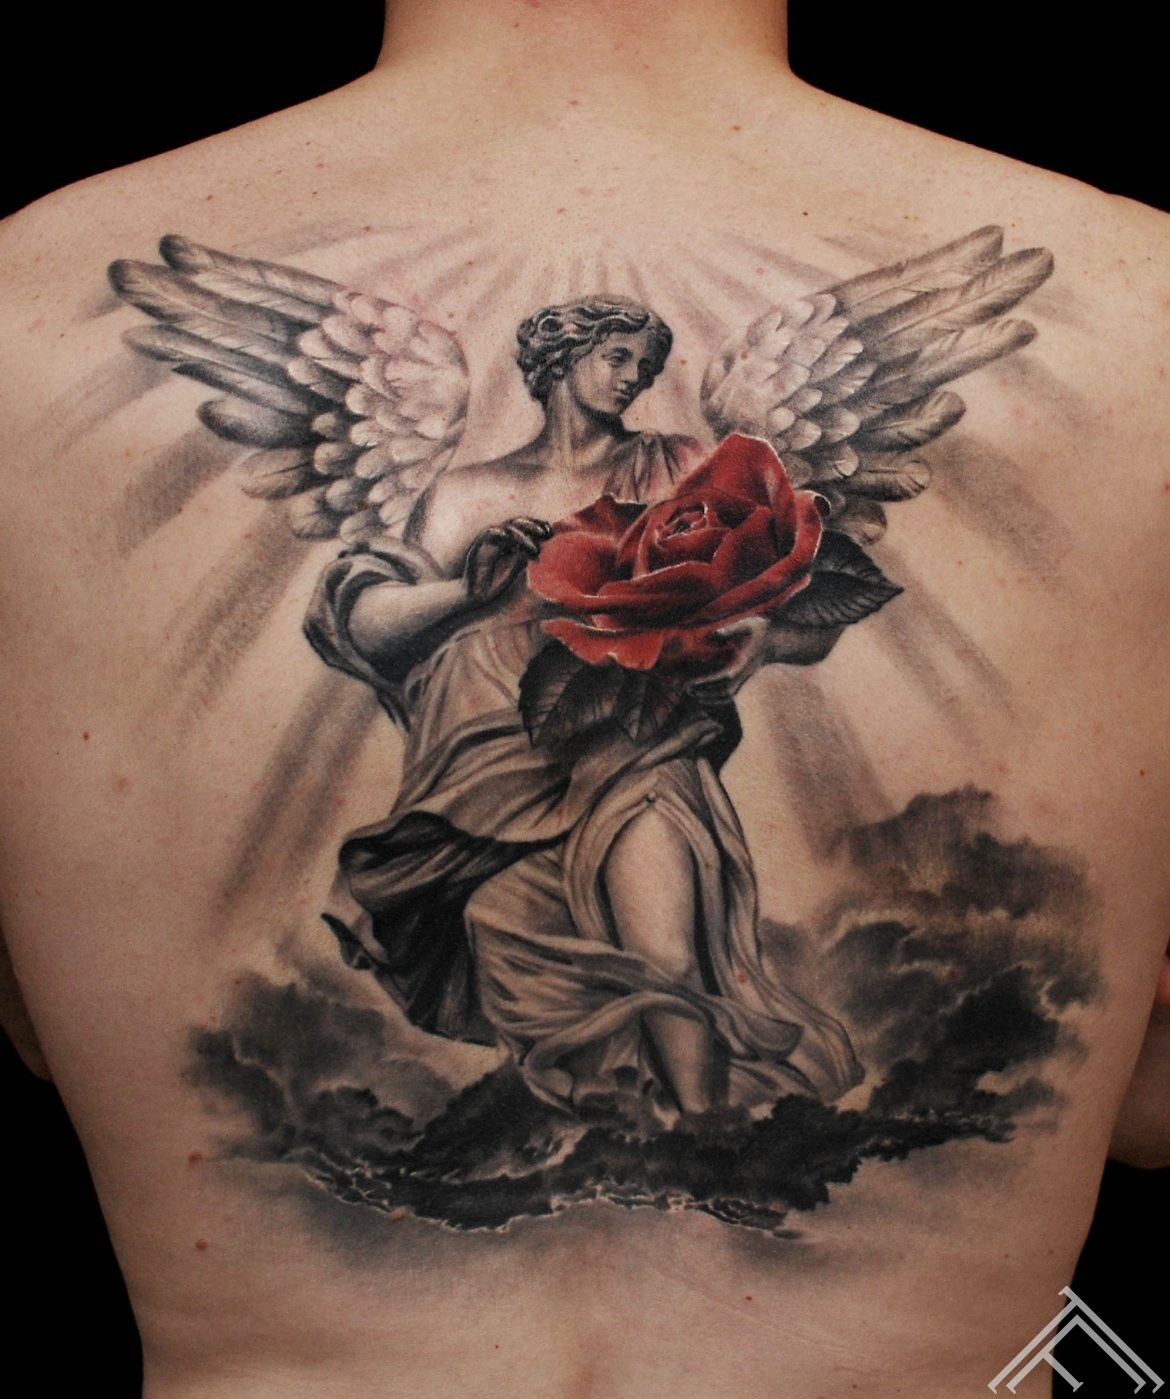 Angel_rose_clouds_stars_back_tattoo_tattoofrequency_marispavlo_mlapa